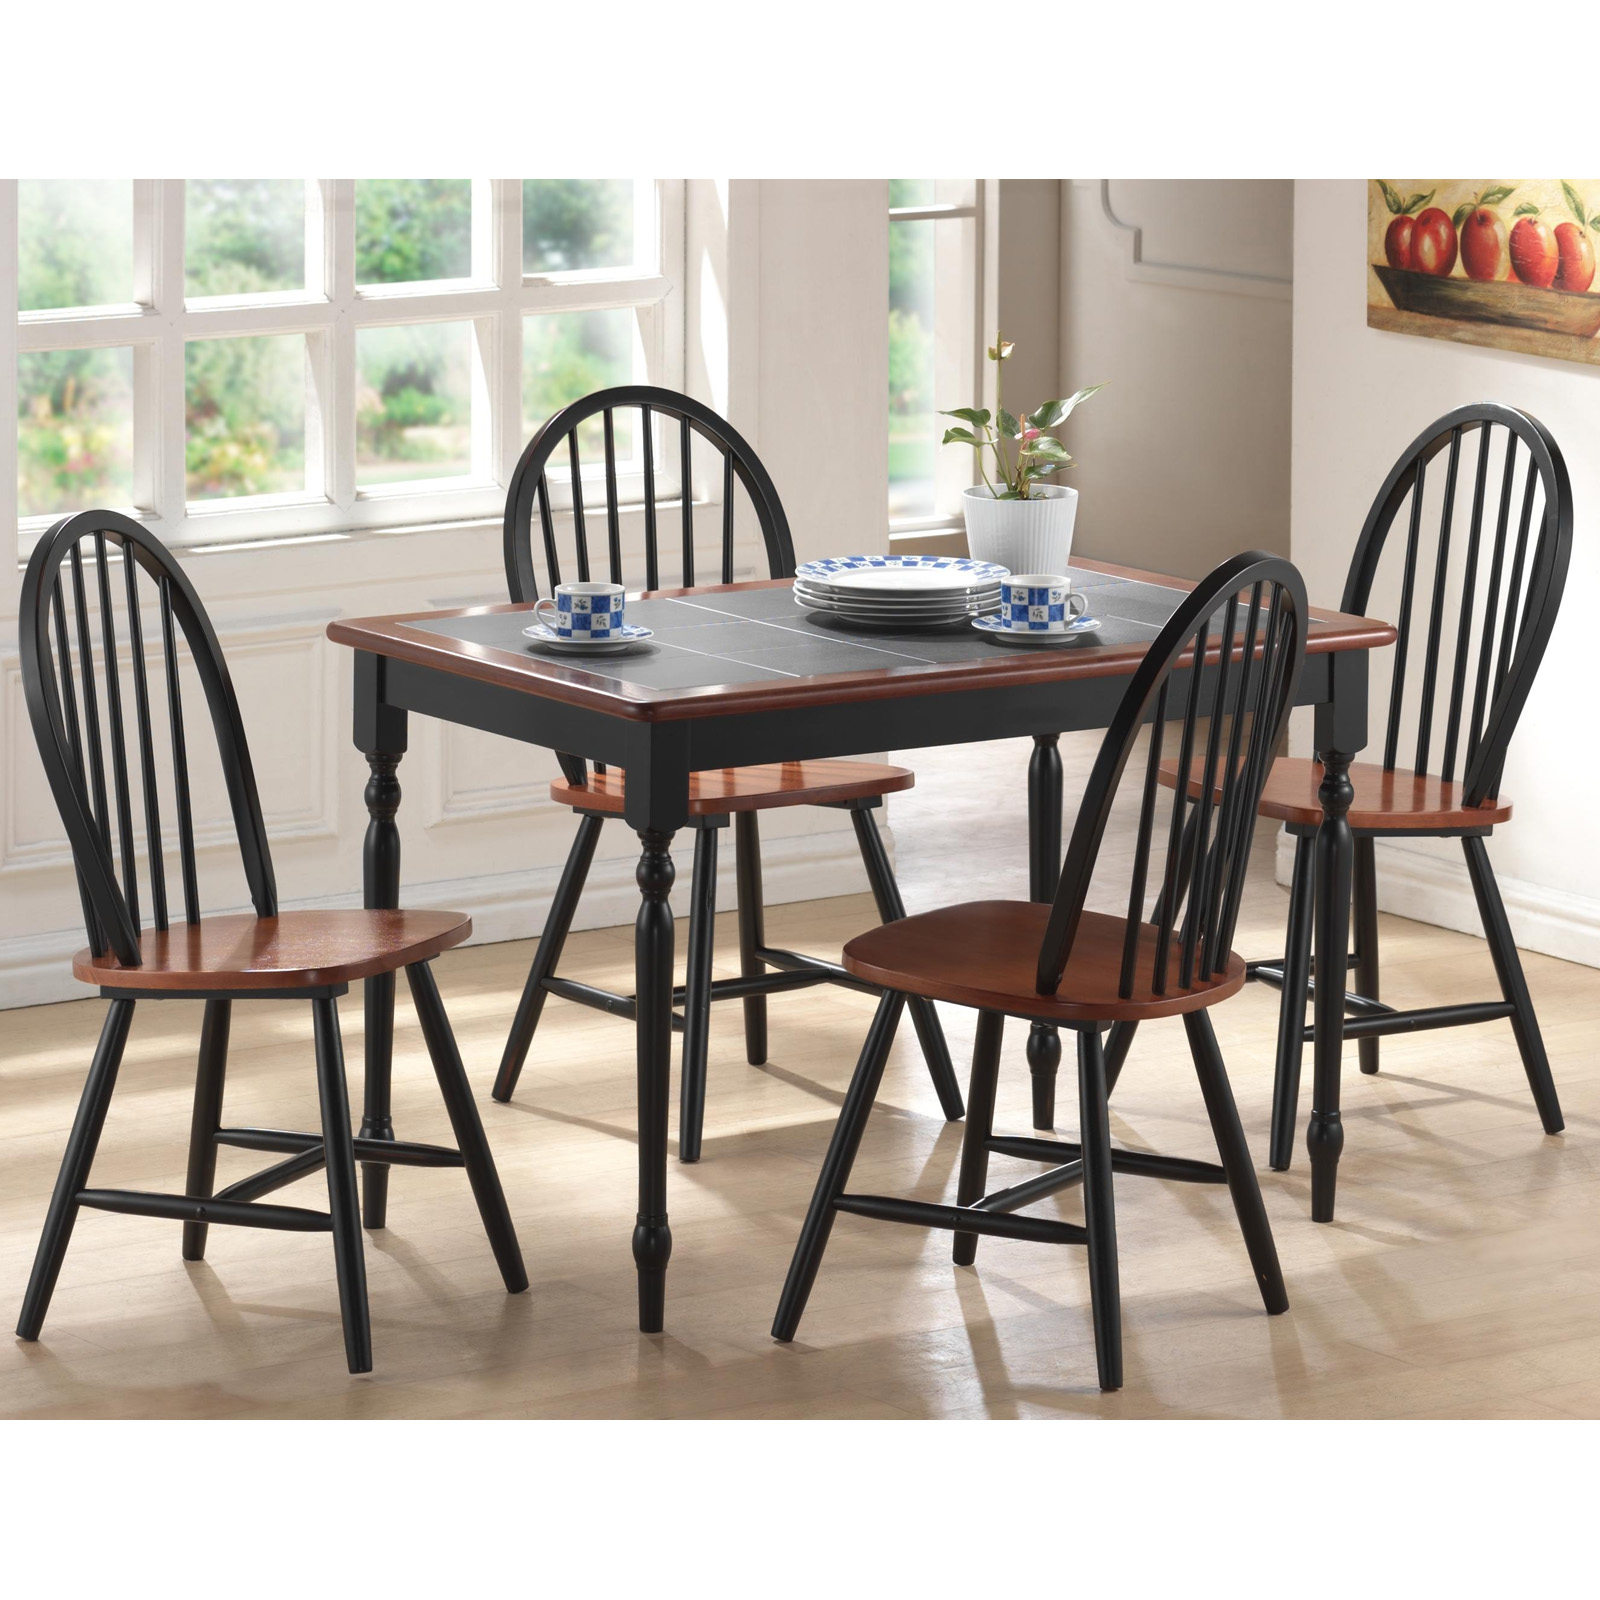 farmhousediningsetwithbench kitchen table chairs Boraam Farmhouse 6 Piece Dining Set with Bench Dining Table Sets at Hayneedle